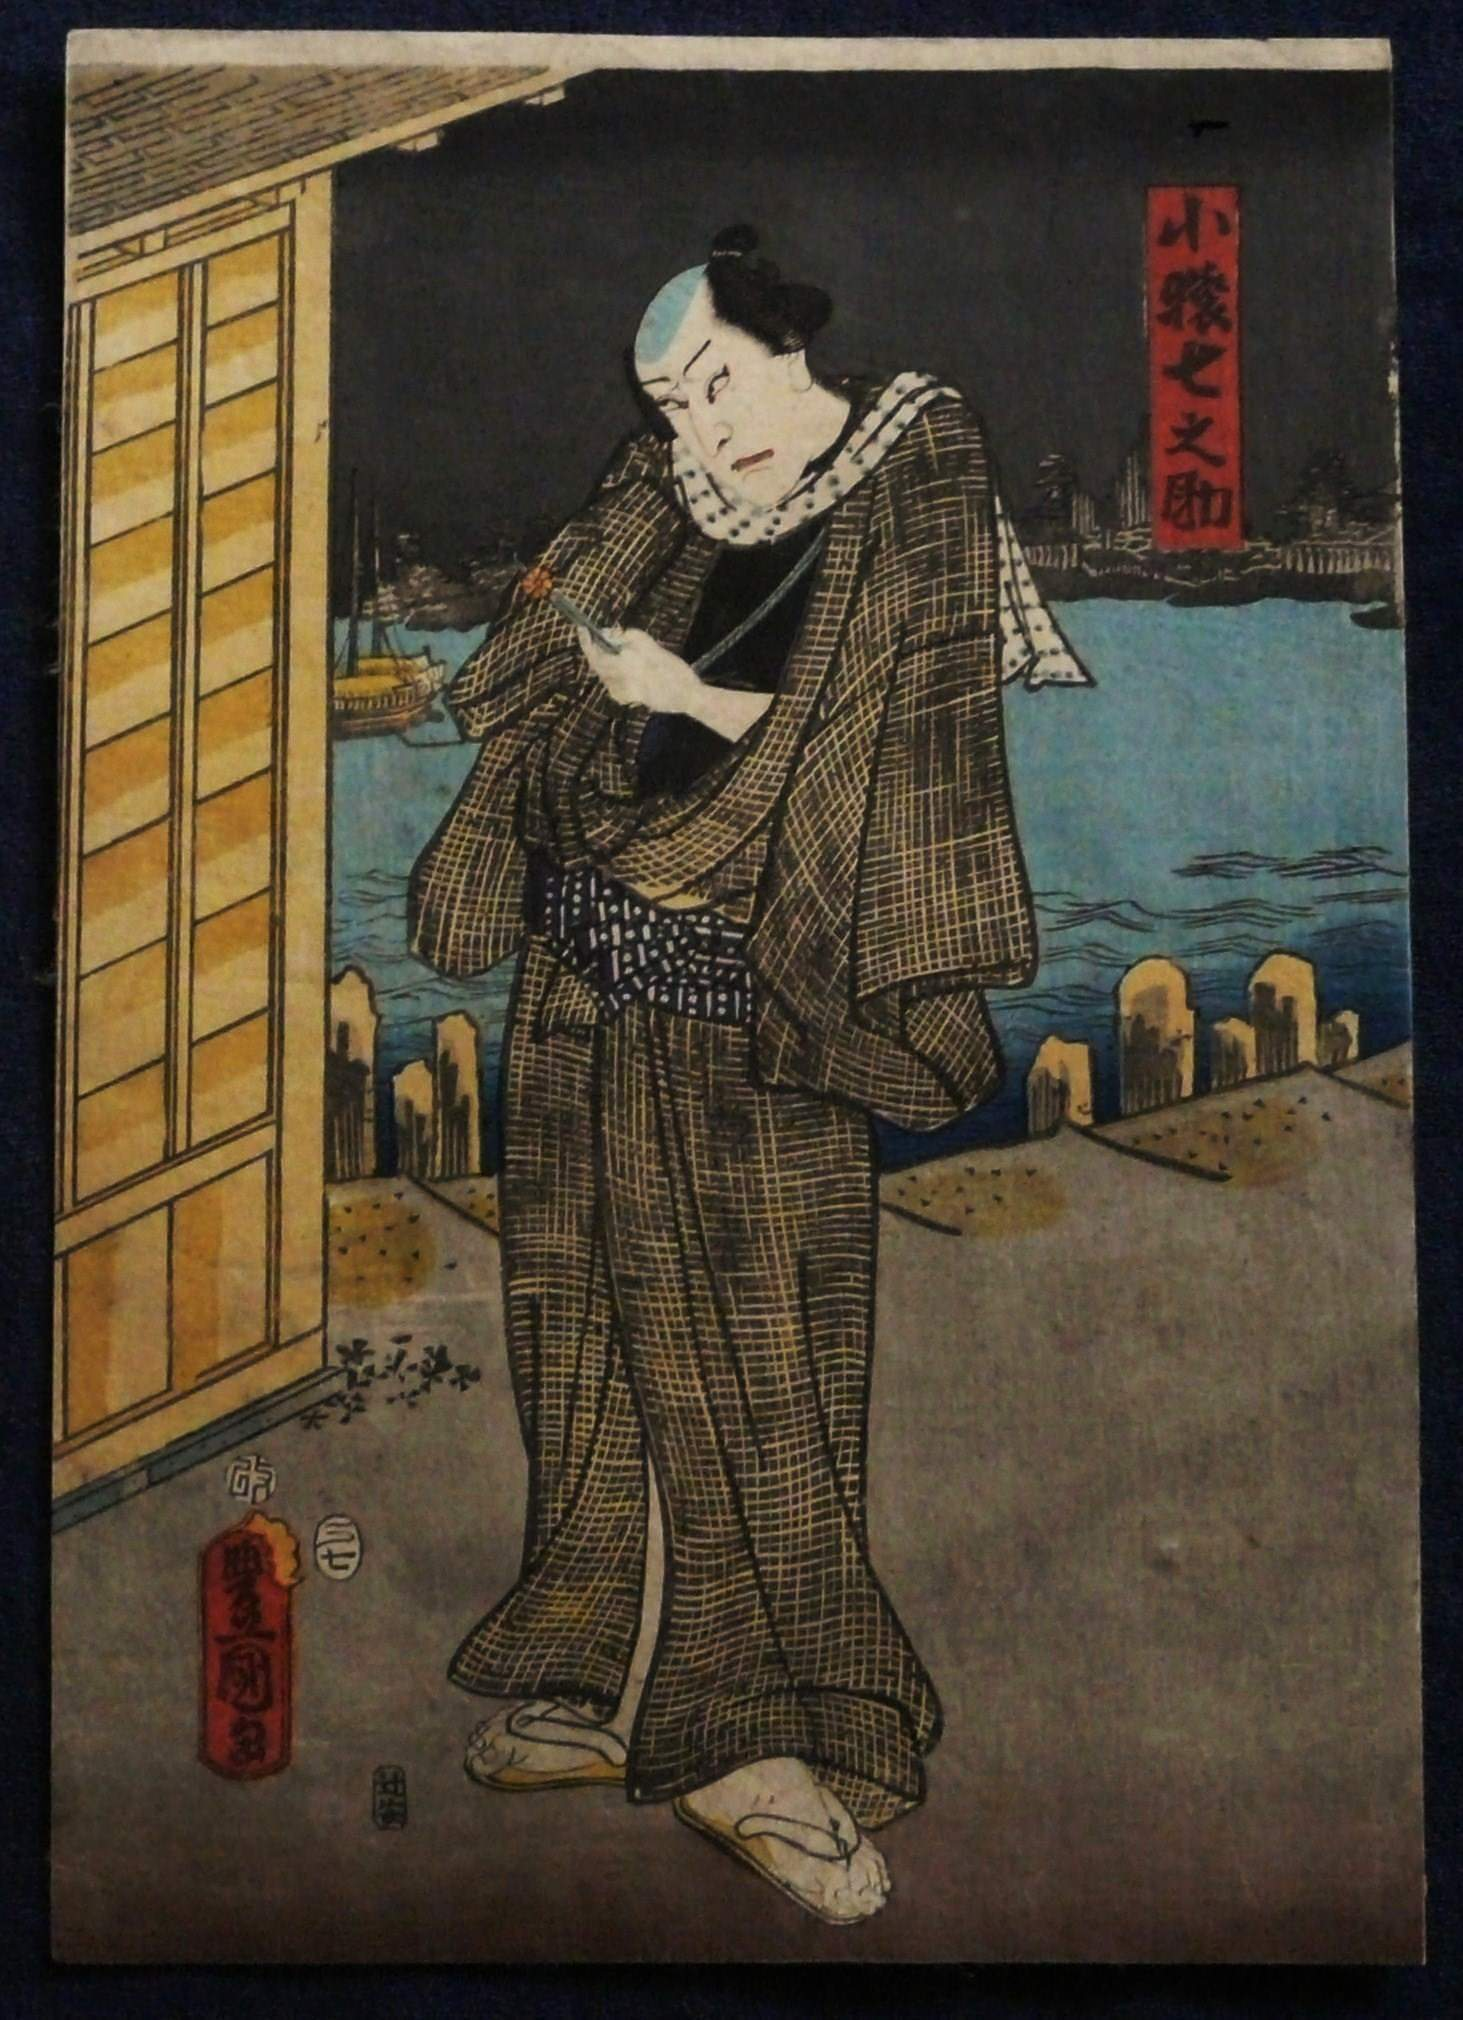 UTAGAWA KUNISADA: #P3834 LONGING FOR HIS LOVER AT NIGHT BY THE RIVER DATED 1853-1857